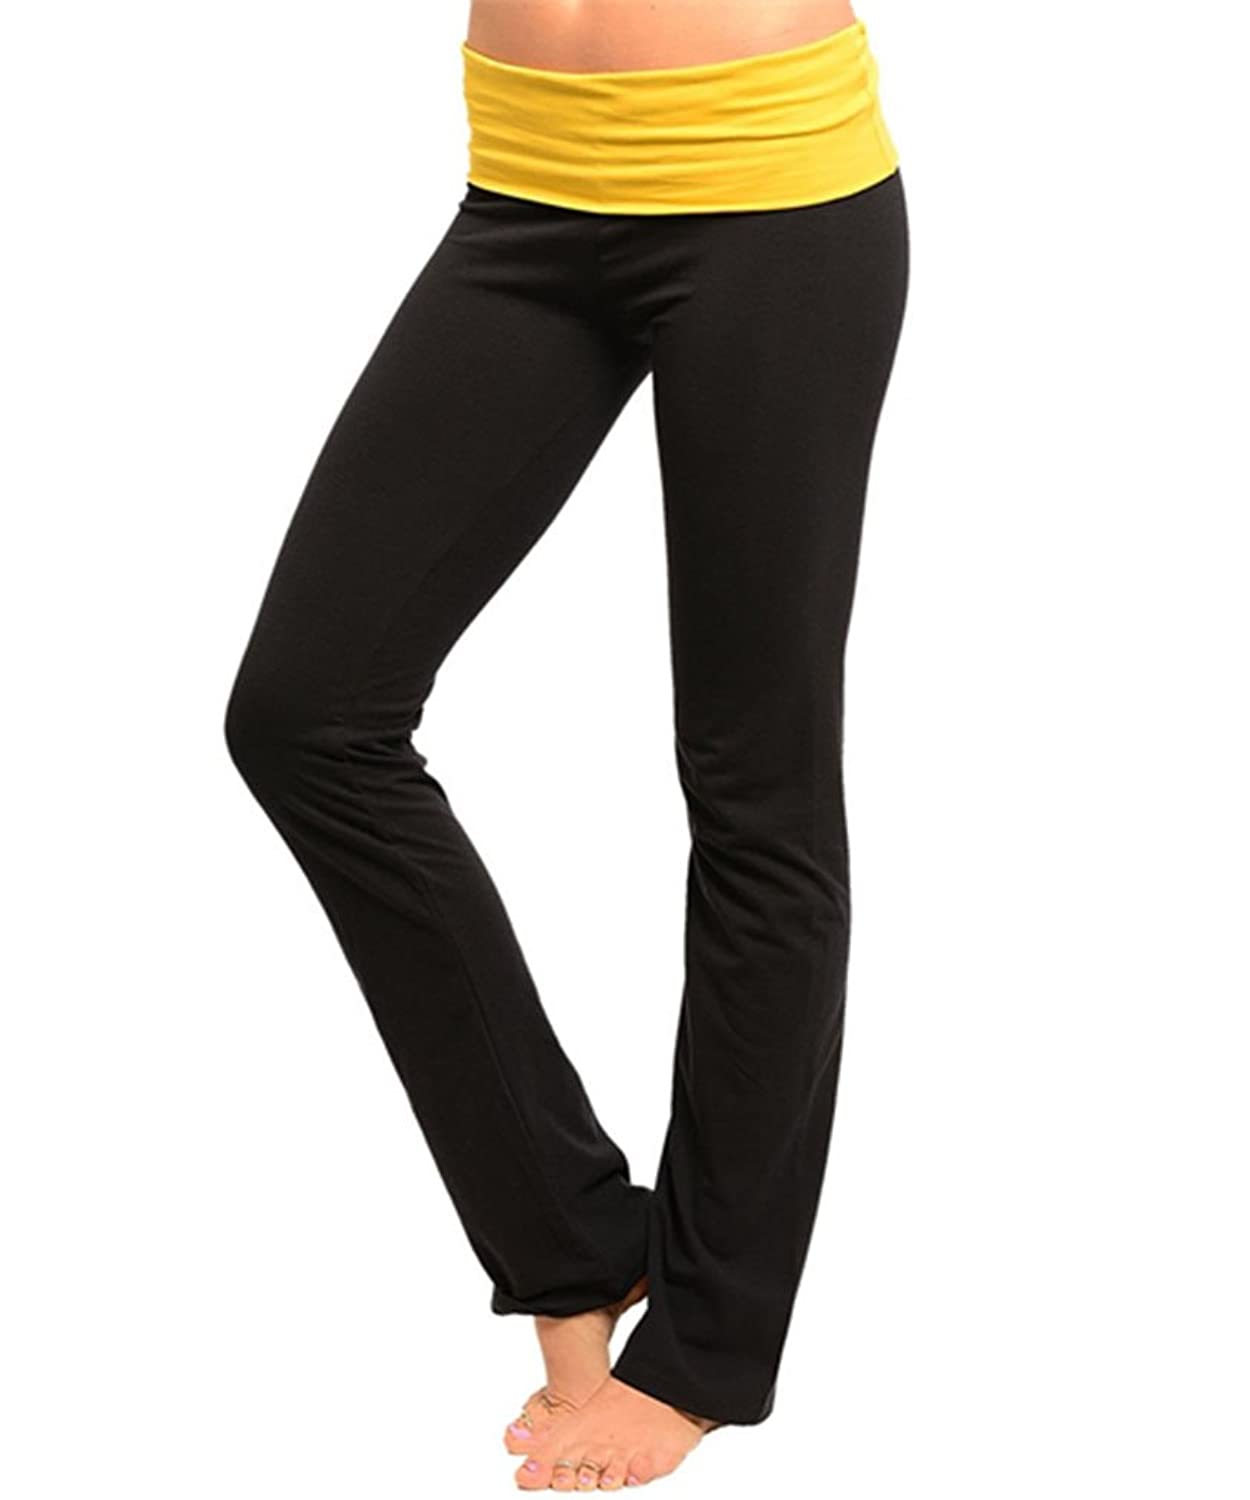 60%OFF Simplicity Ladies'Workout Yoga Pants, Many Colors, Cotton ...